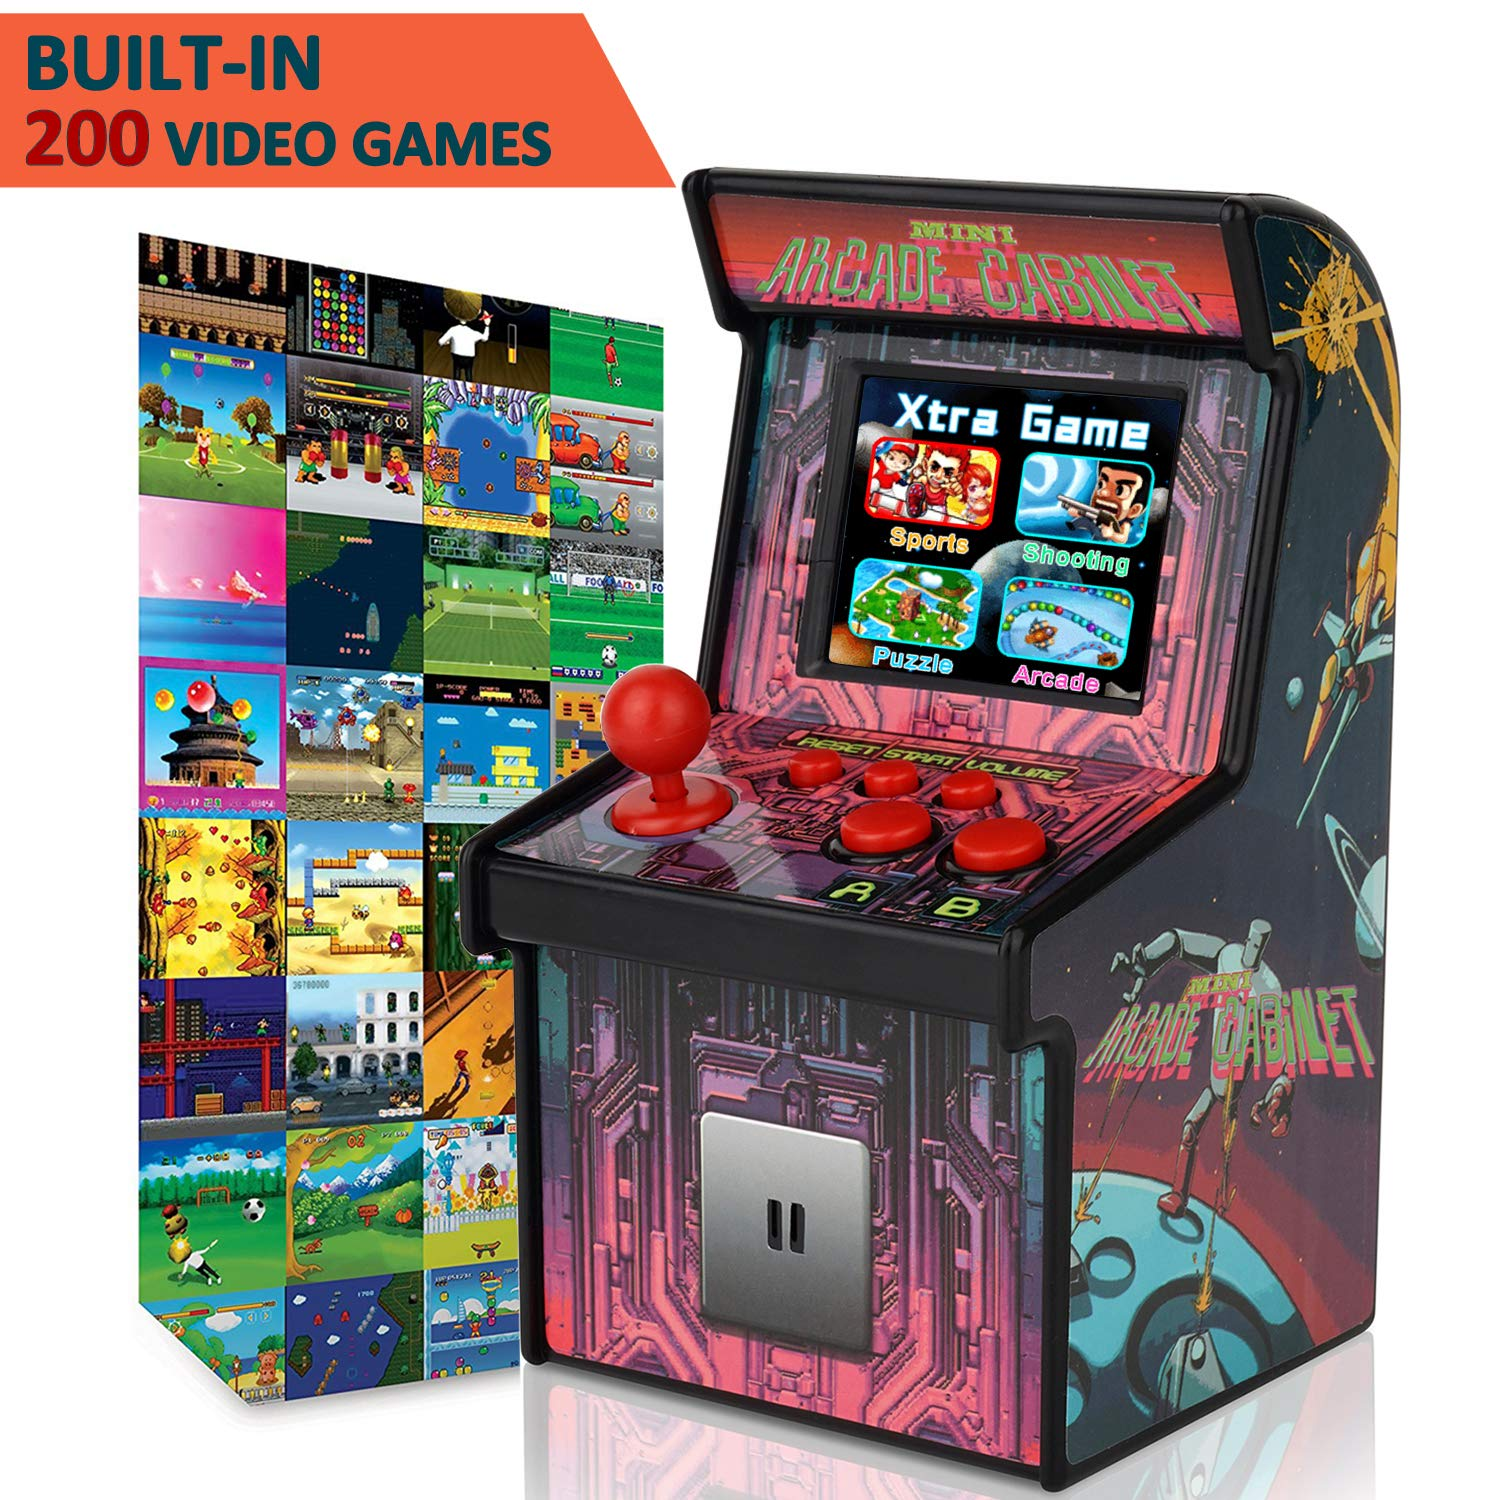 GBD Kids Mini Retro Arcade Game Cabinet Machine 200 Classic Handheld Video Games 2.5'' Display Joystick Travel Portable Game Player Kids Boys Girls Holiday Birthday Gifts Electronic Toys by GBD (Image #2)